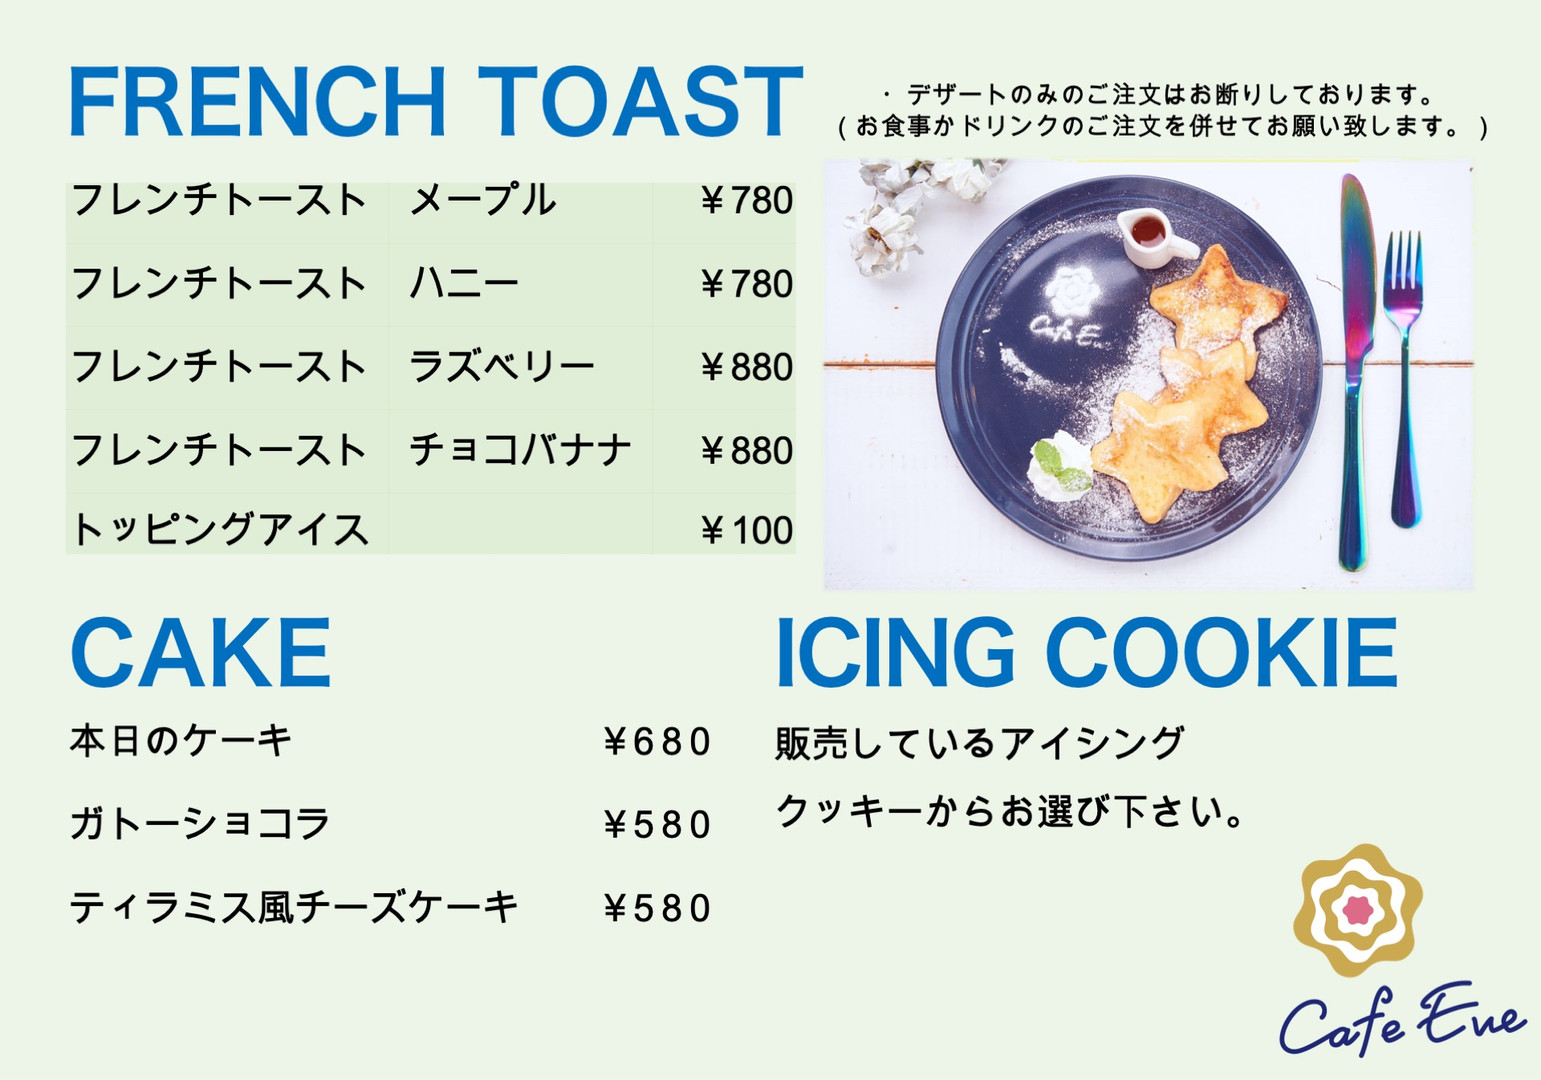 FRENCH TOAST,CAKE,ICING COOKIE